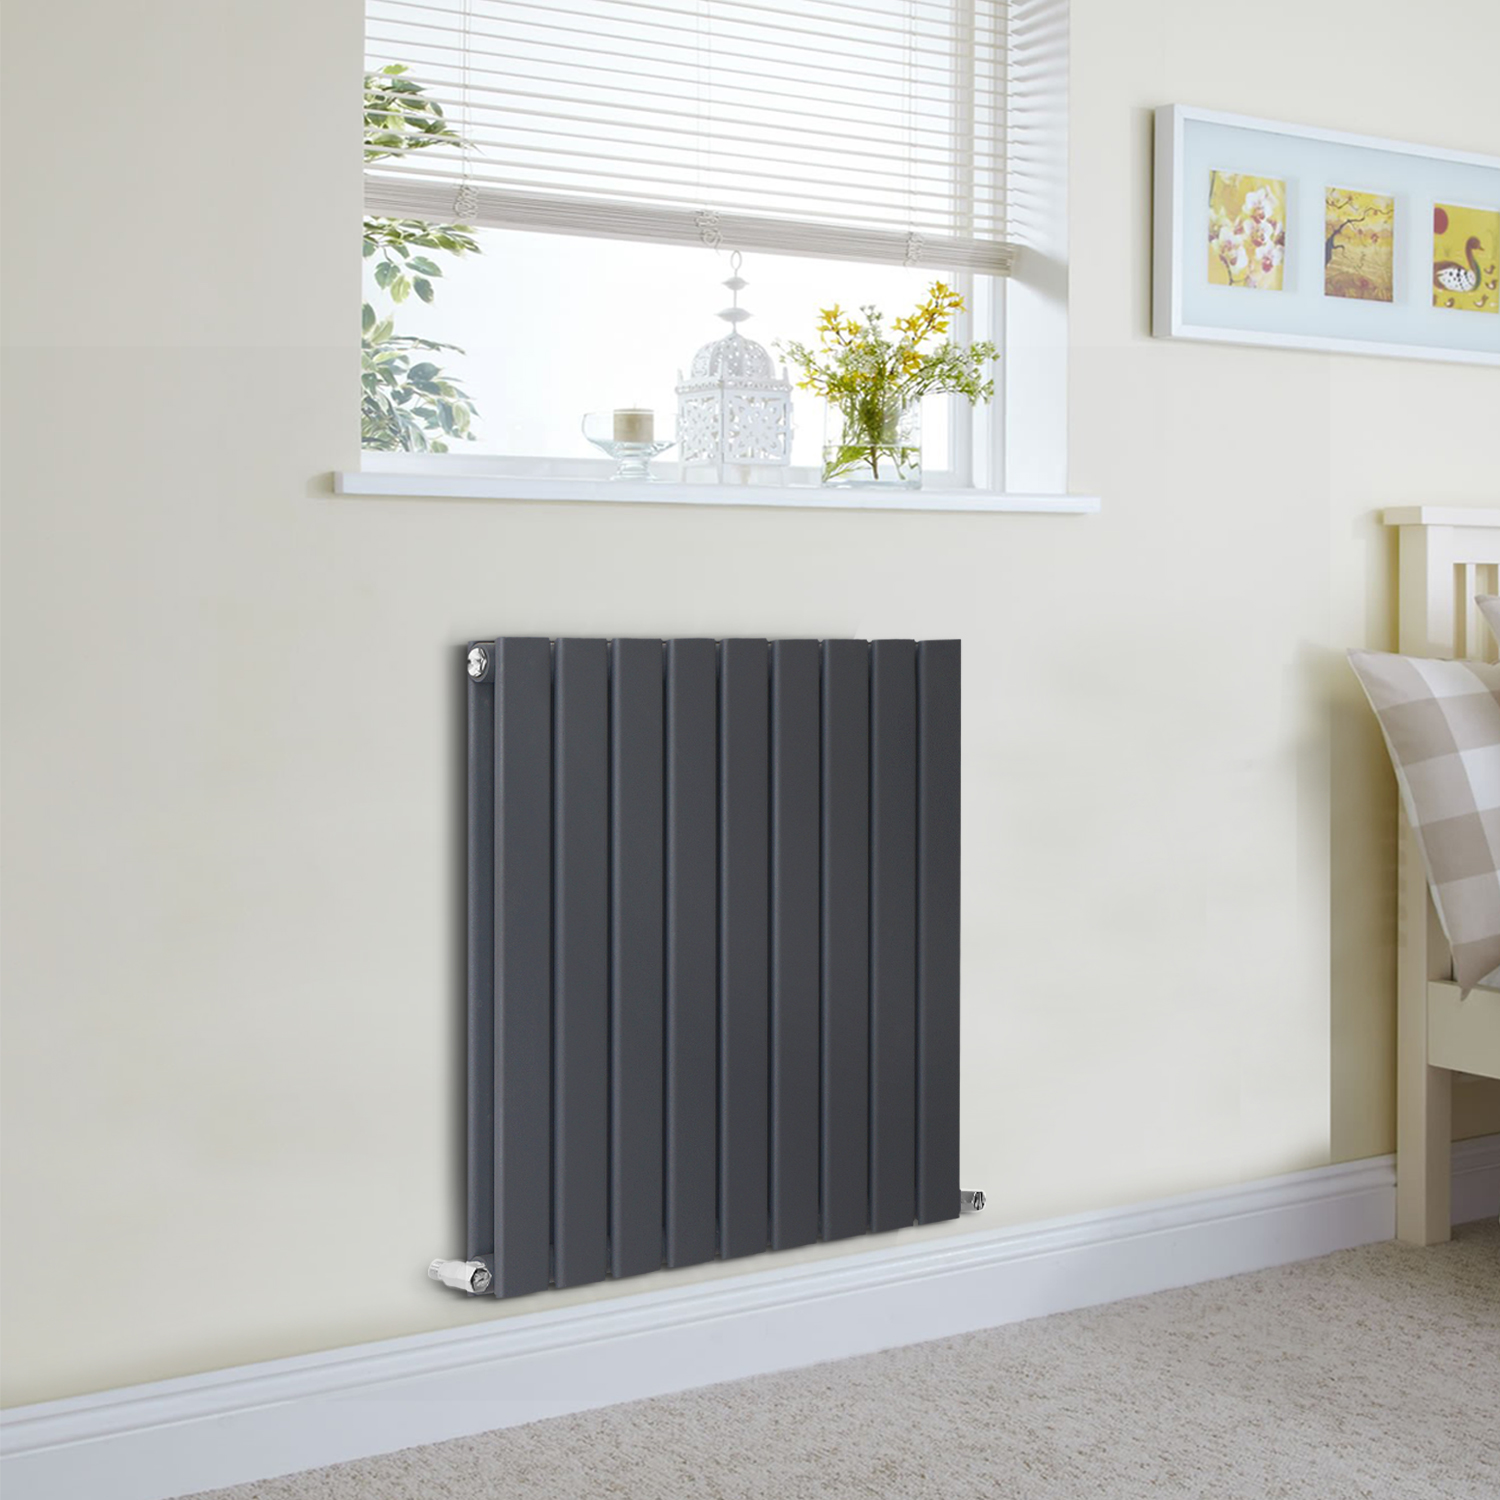 Designer flat panel radiator room heater uk centre heating system ebay for Contemporary radiators for living room